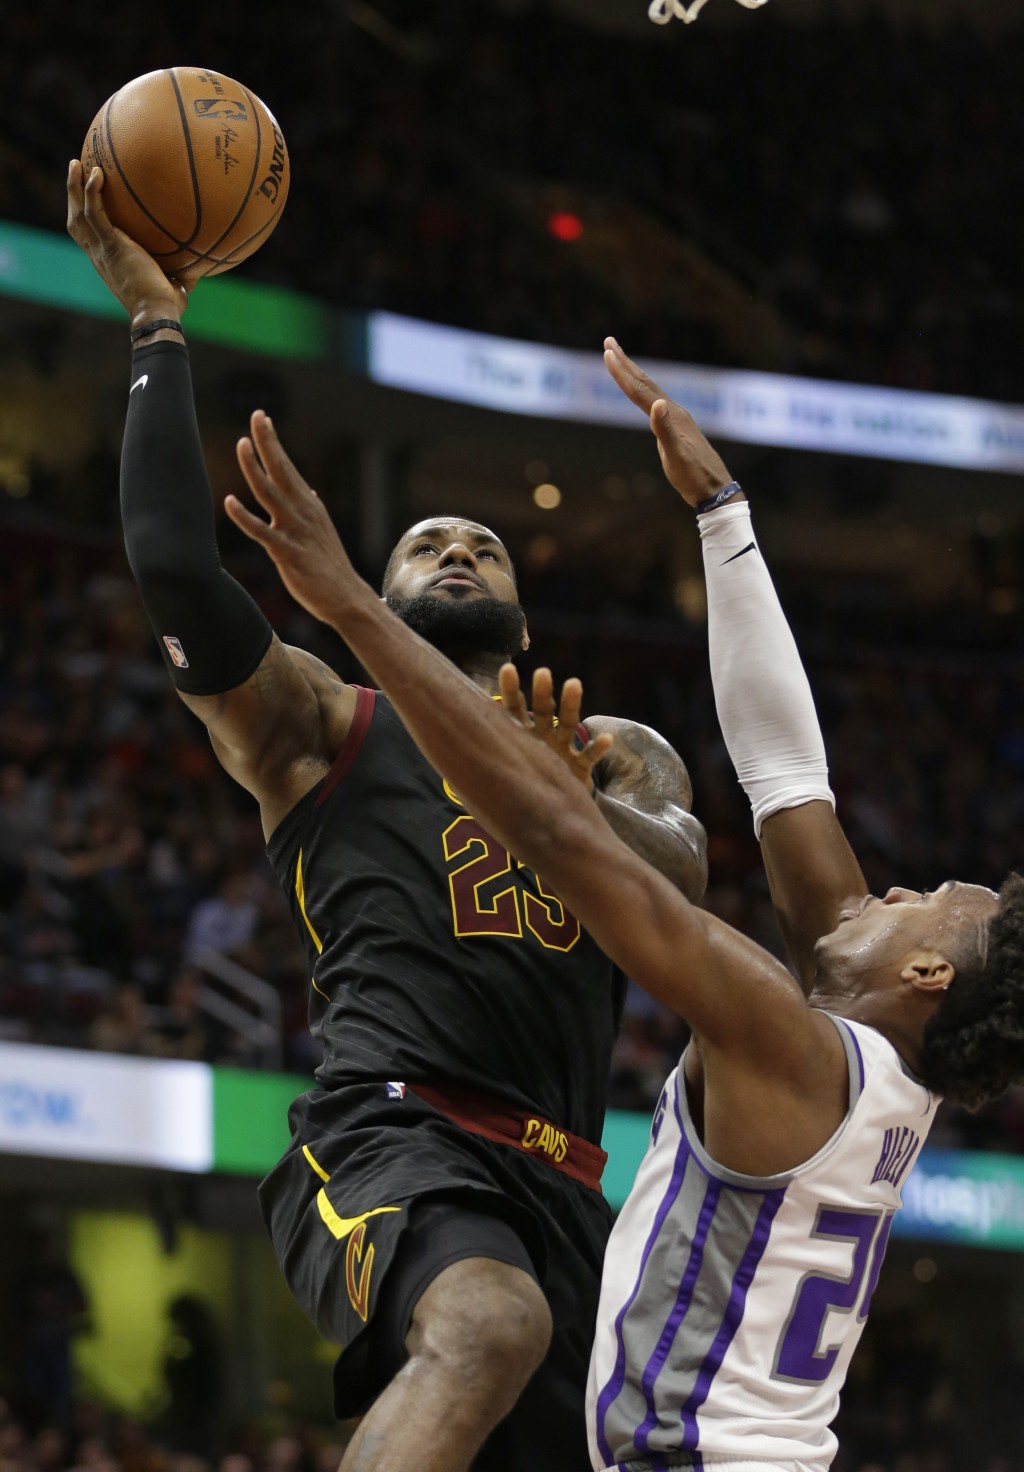 Cleveland Cavaliers' LeBron James (23) drives to the basket against Sacramento Kings' Buddy Hield (24), from the Bahamas, in the first half of an NBA